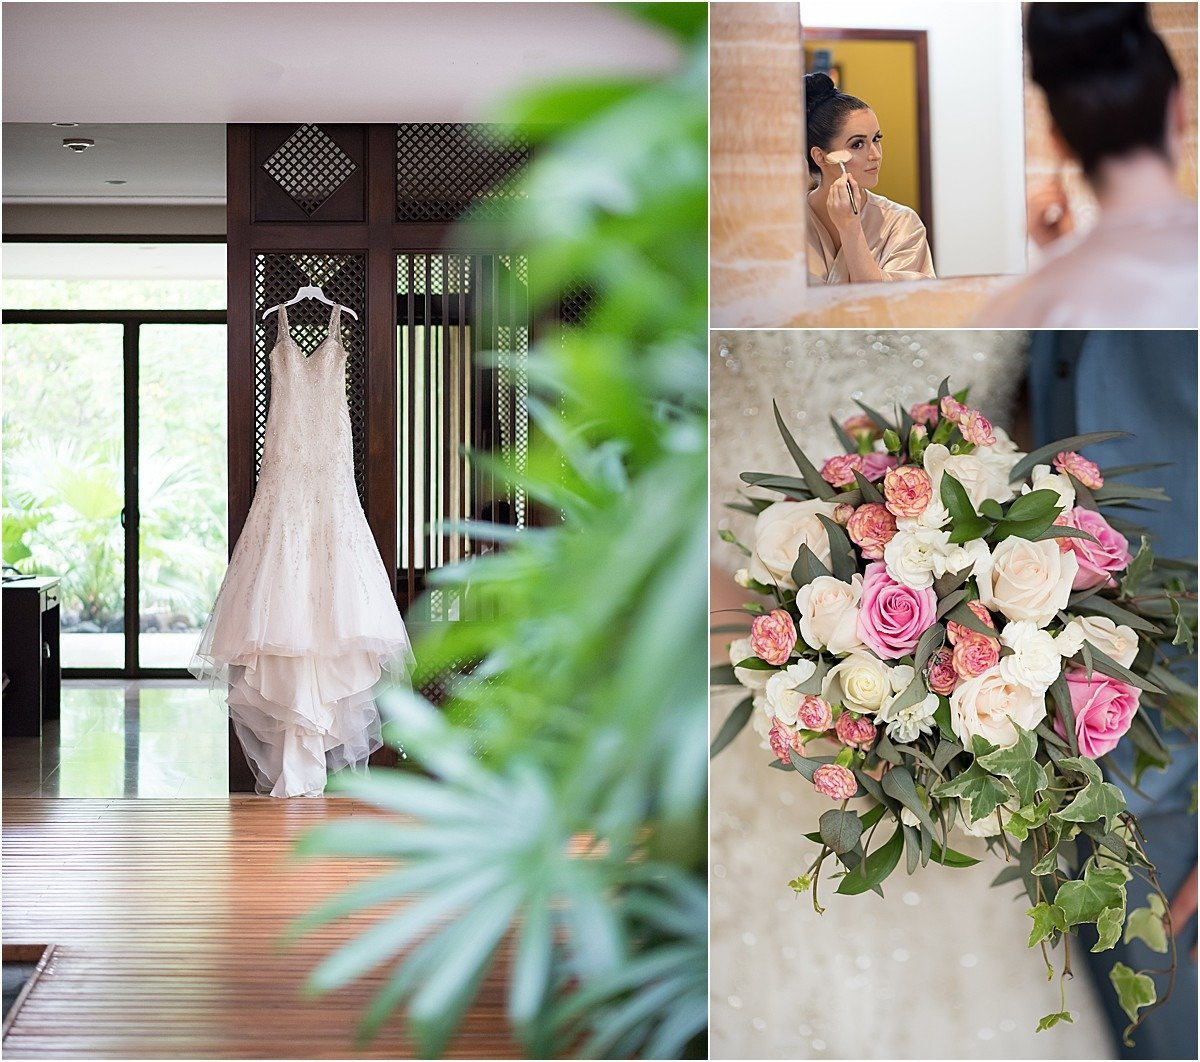 Wedding details in the conchal hotel